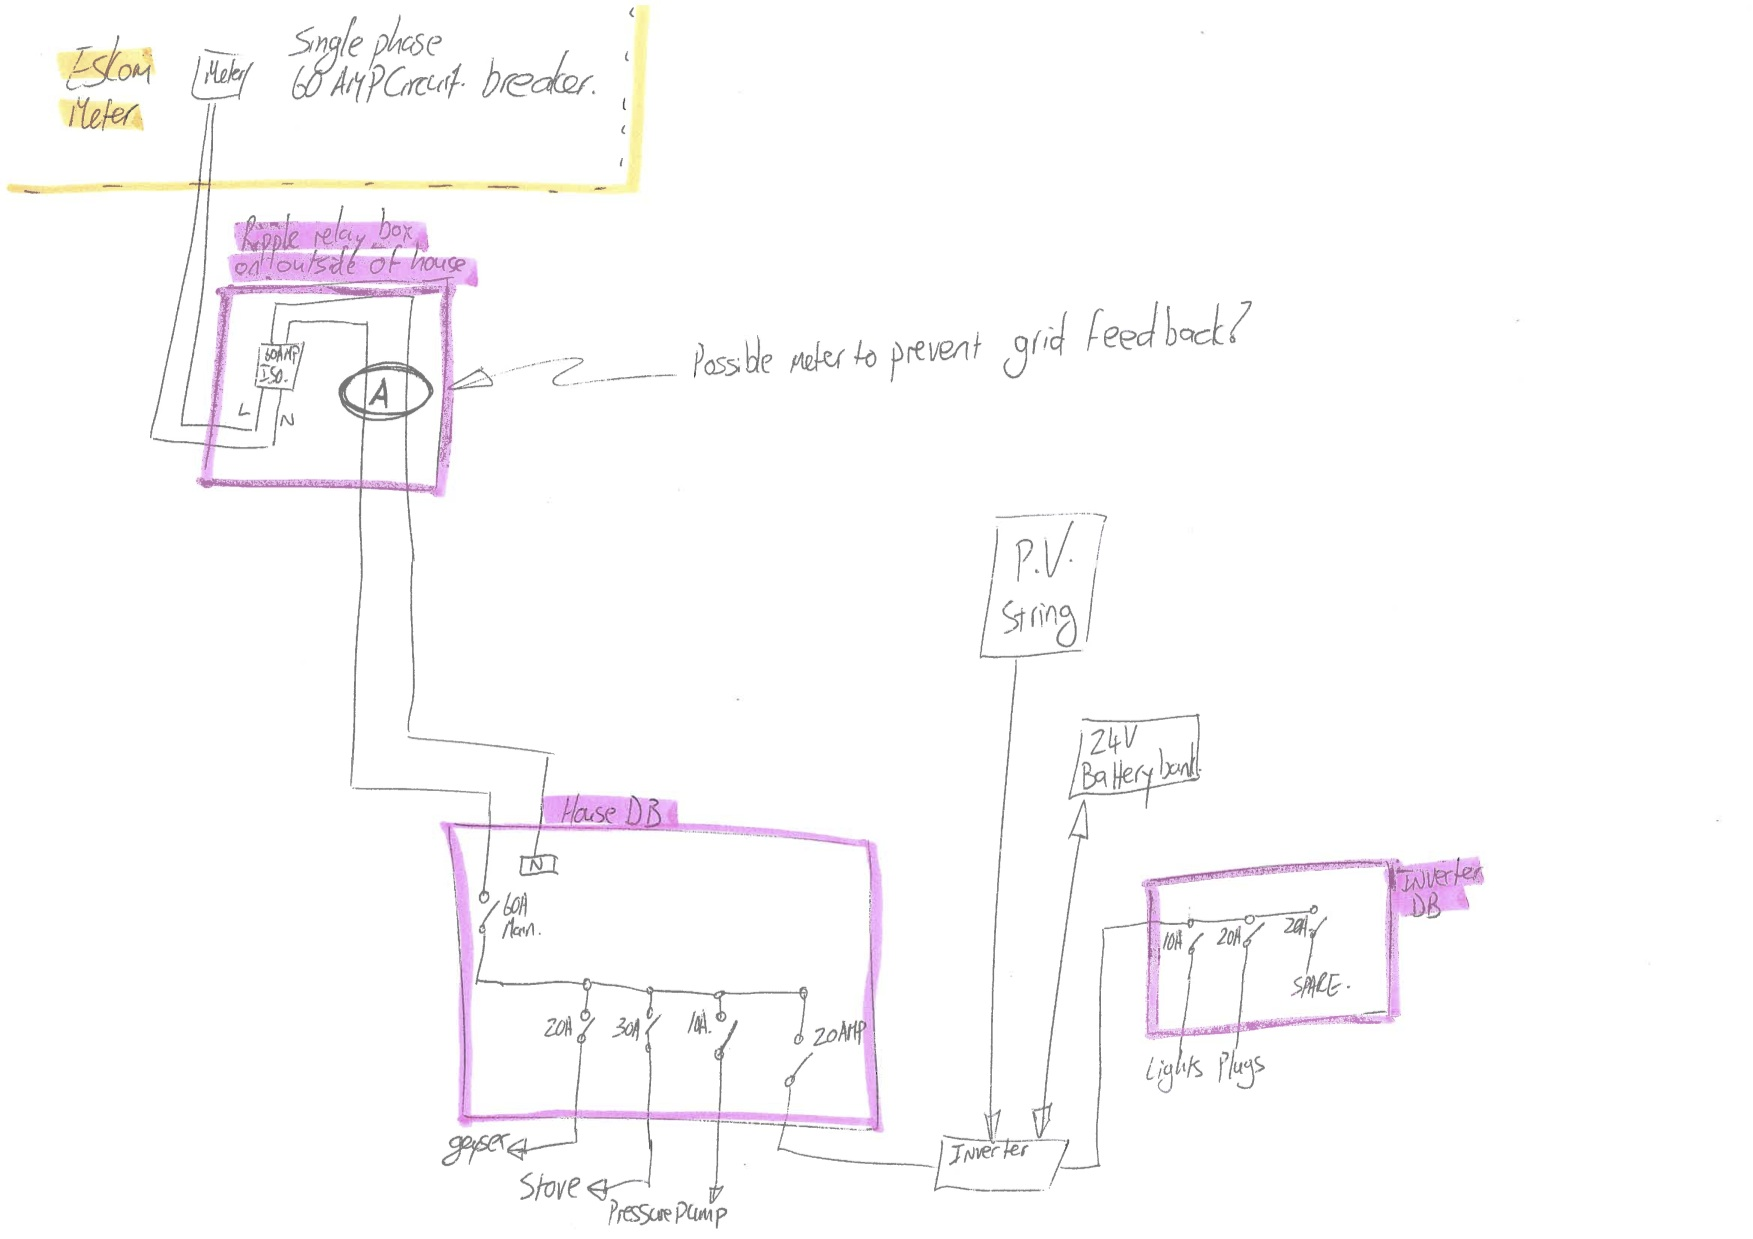 Grid Tie Inverter On Separate Battery Output Inverters Schematic Diagram Get Free Image About Wiring Sminolta17081617210 Copy